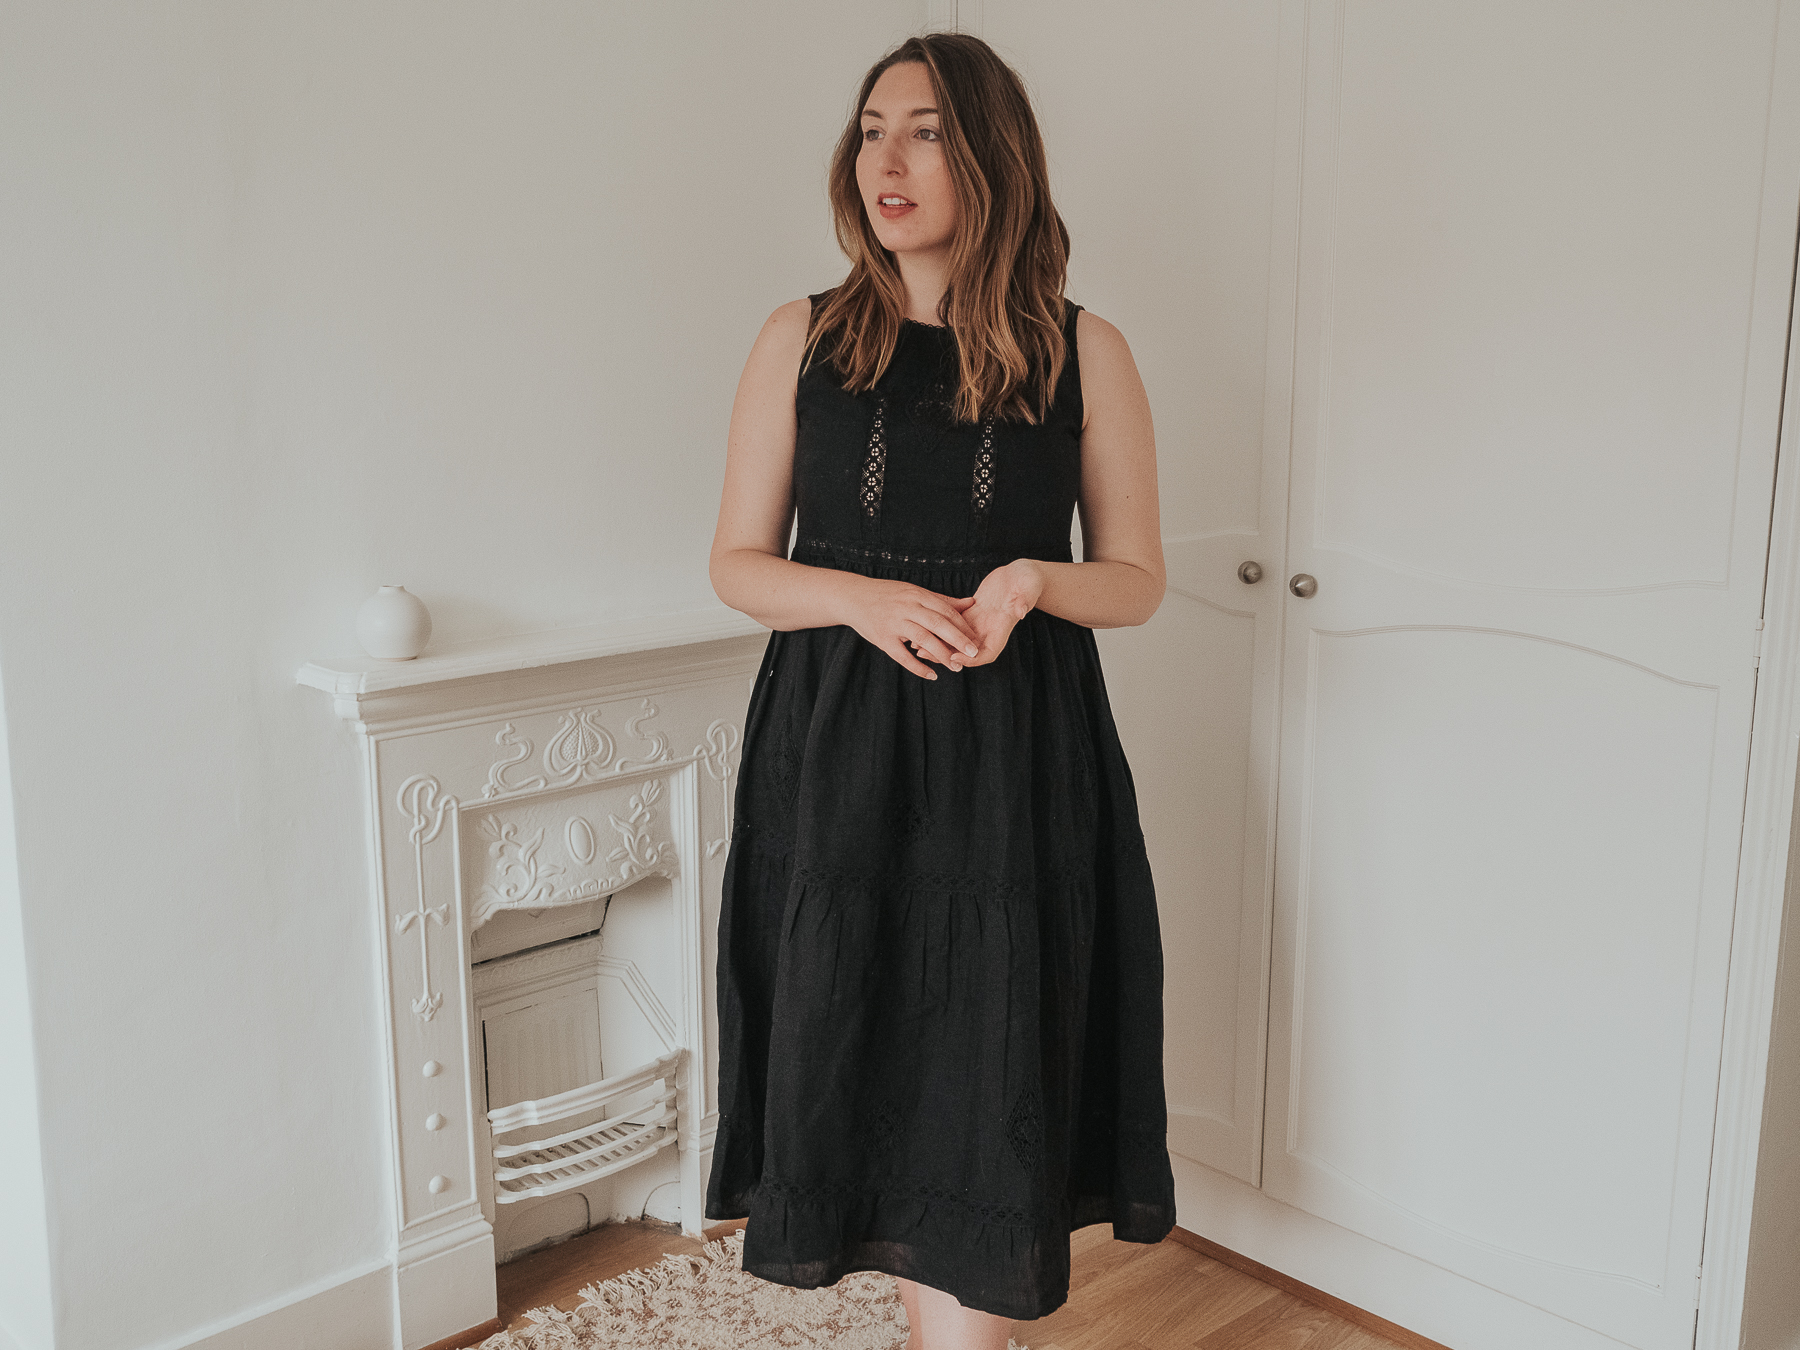 Try on Trials: An Honest Review of Sezane (Dresses, Tops, & Accessories)